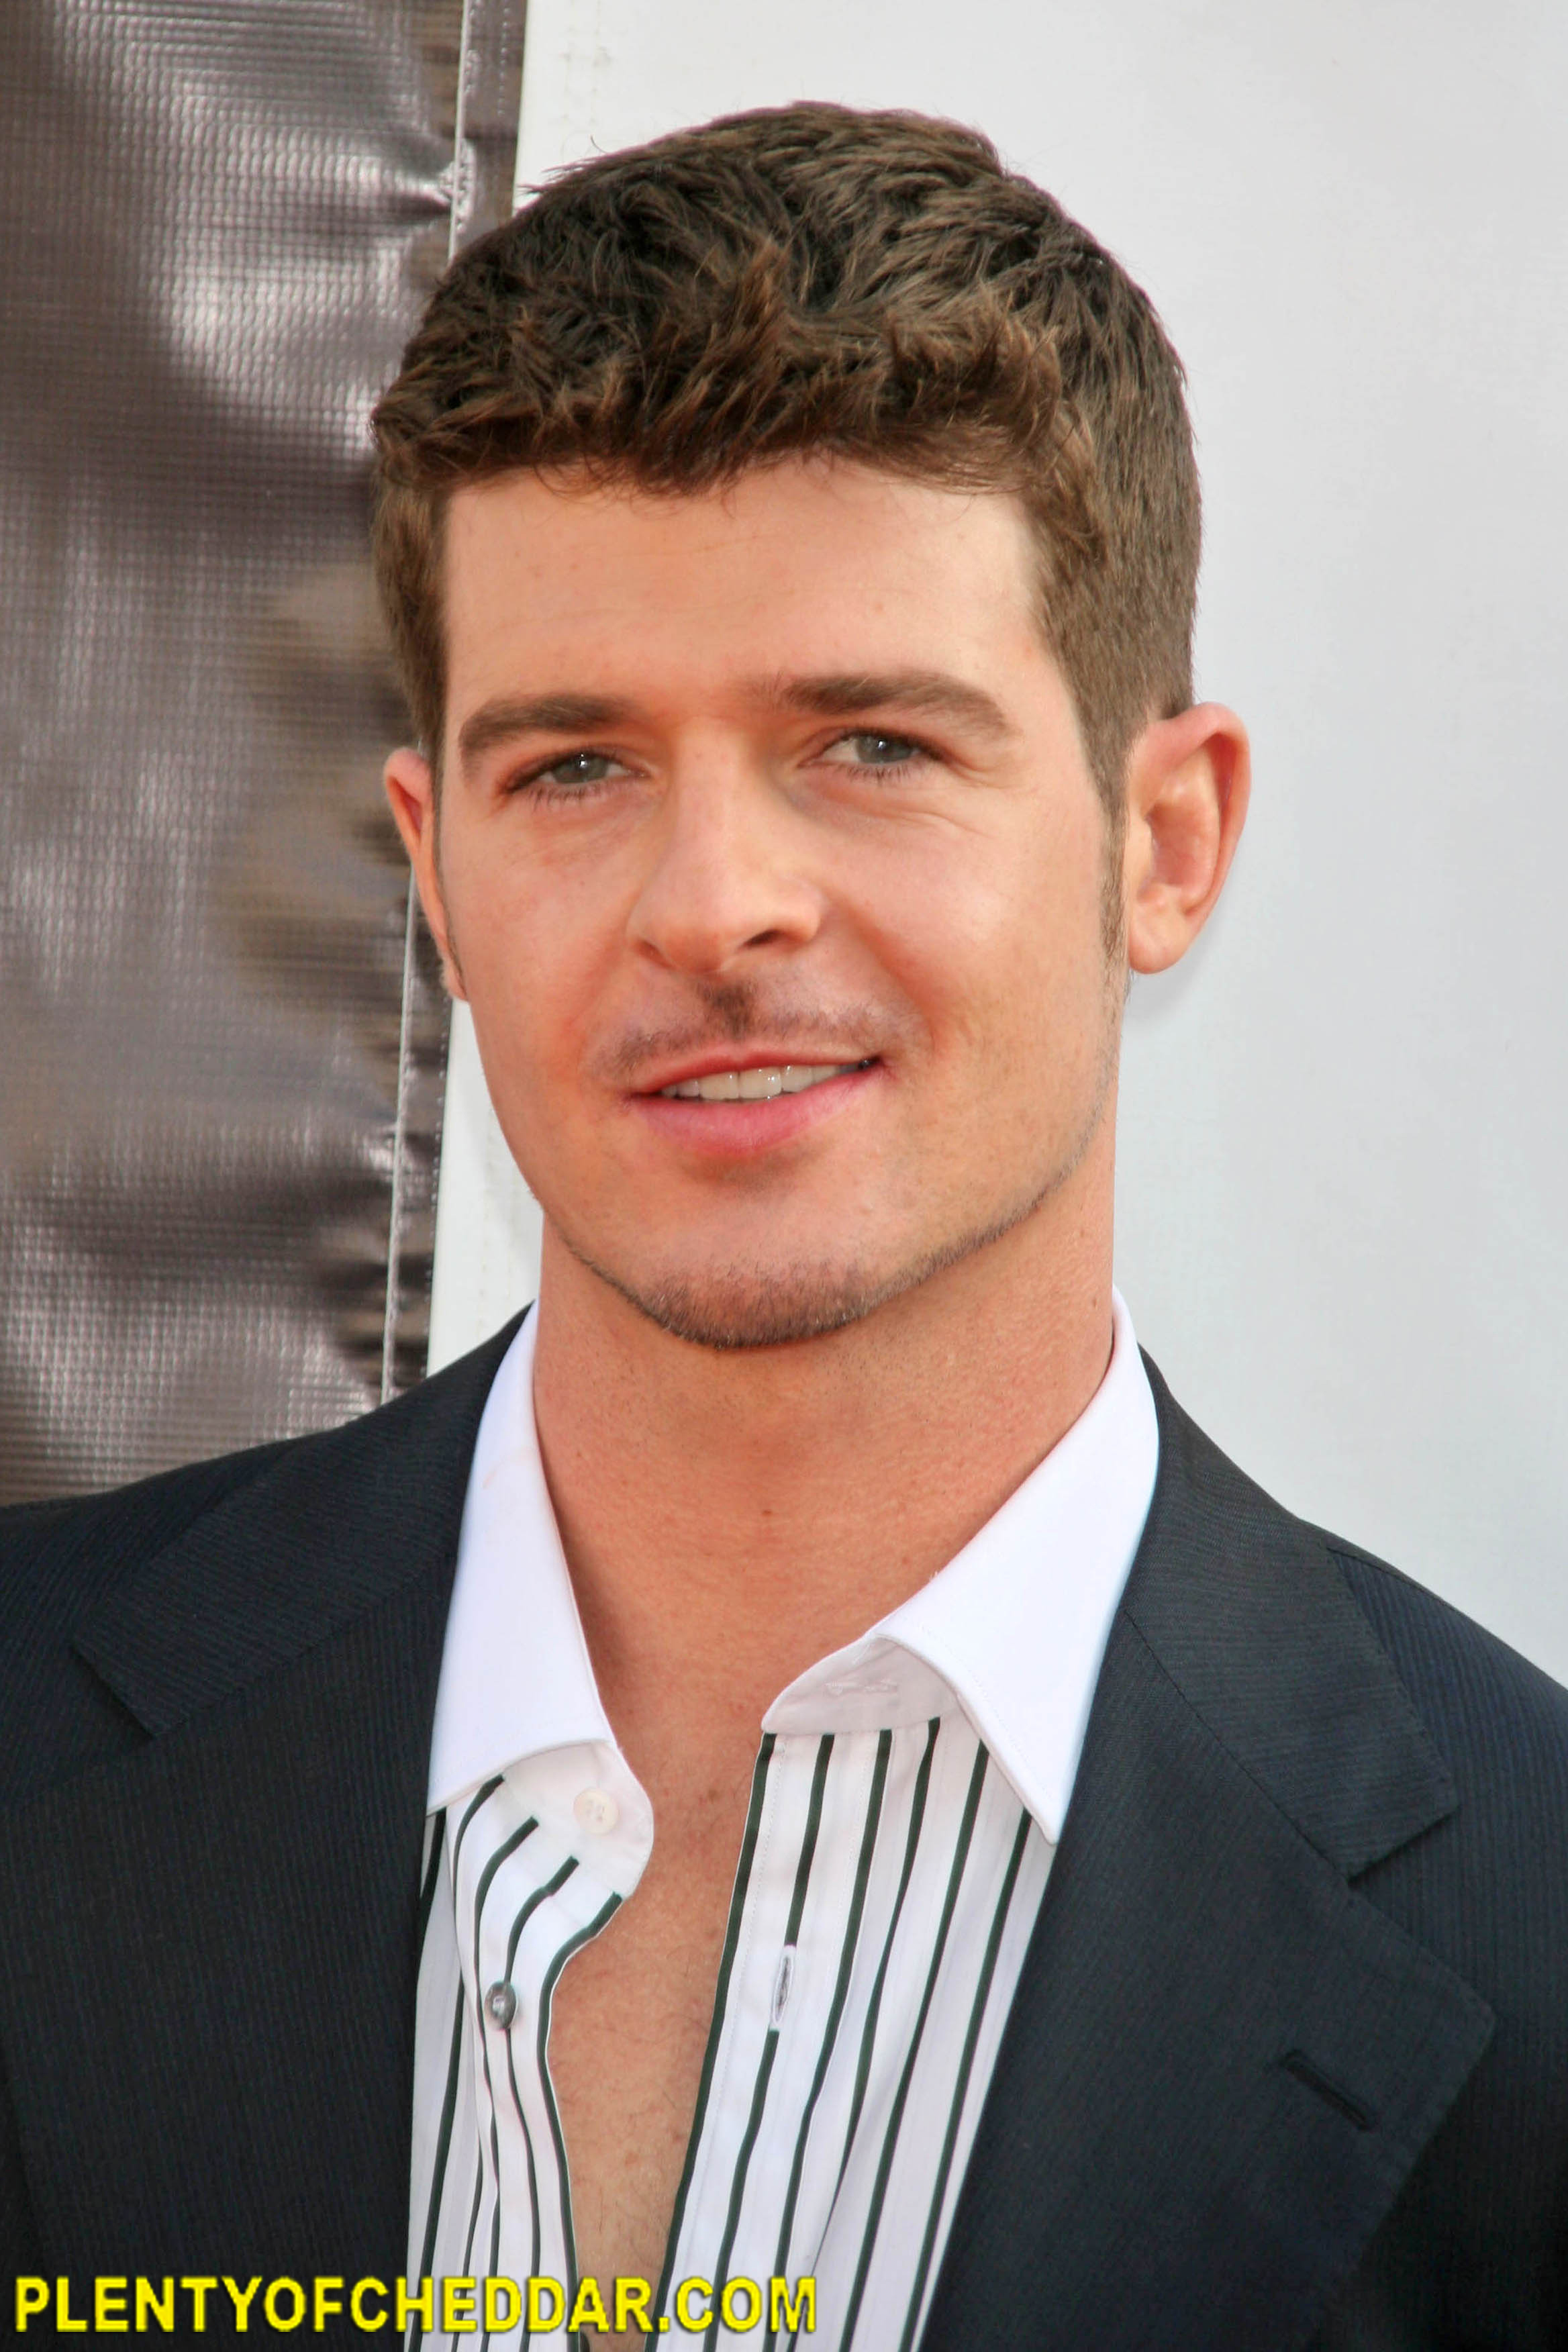 Robin thicke net worth plenty of cheddar robinthicke nvjuhfo Image collections